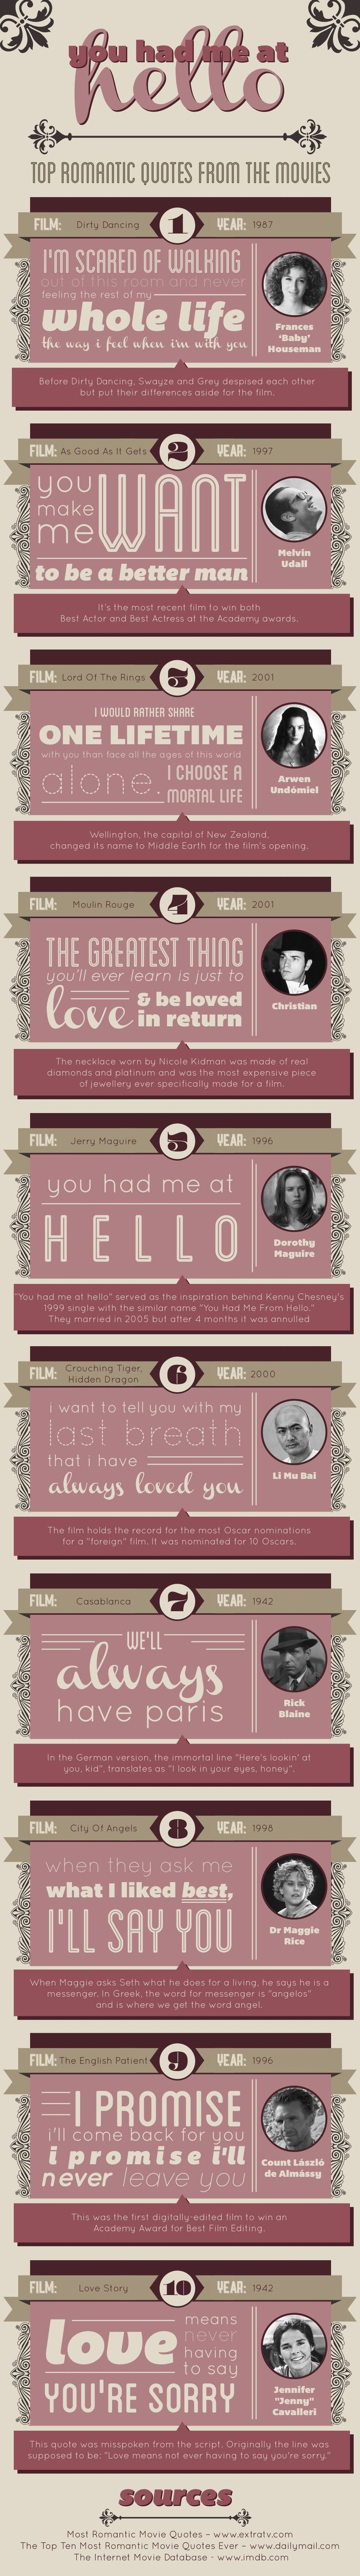 Best 25 Quotes from movies ideas on Pinterest